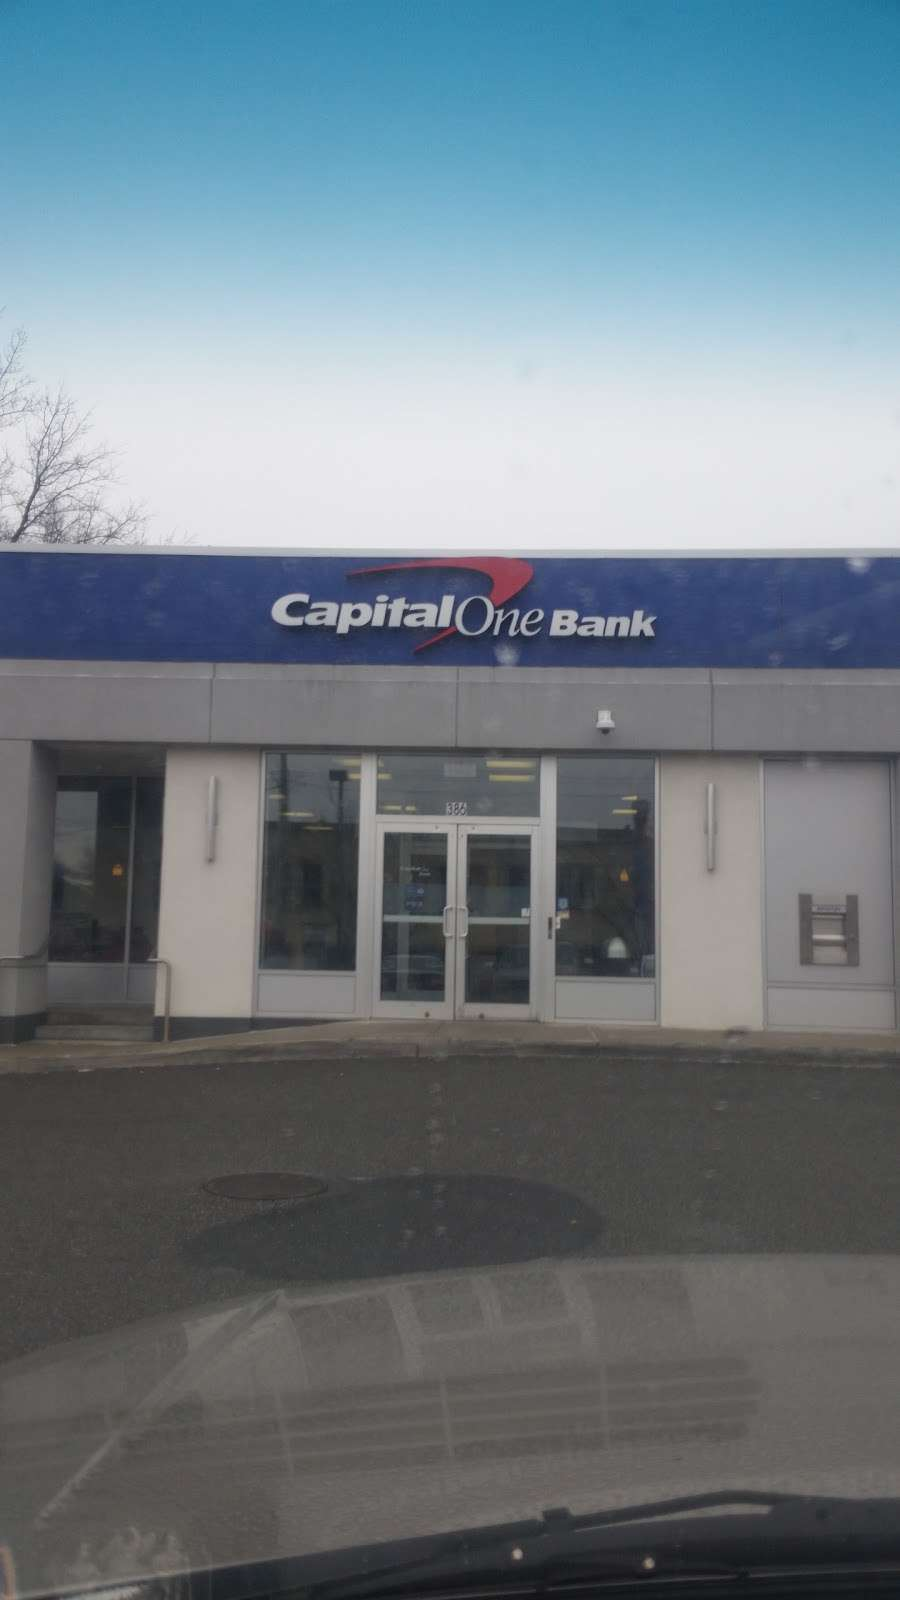 Capital One Bank - bank  | Photo 6 of 6 | Address: 386 Forest Ave, Staten Island, NY 10301, USA | Phone: (917) 423-8976